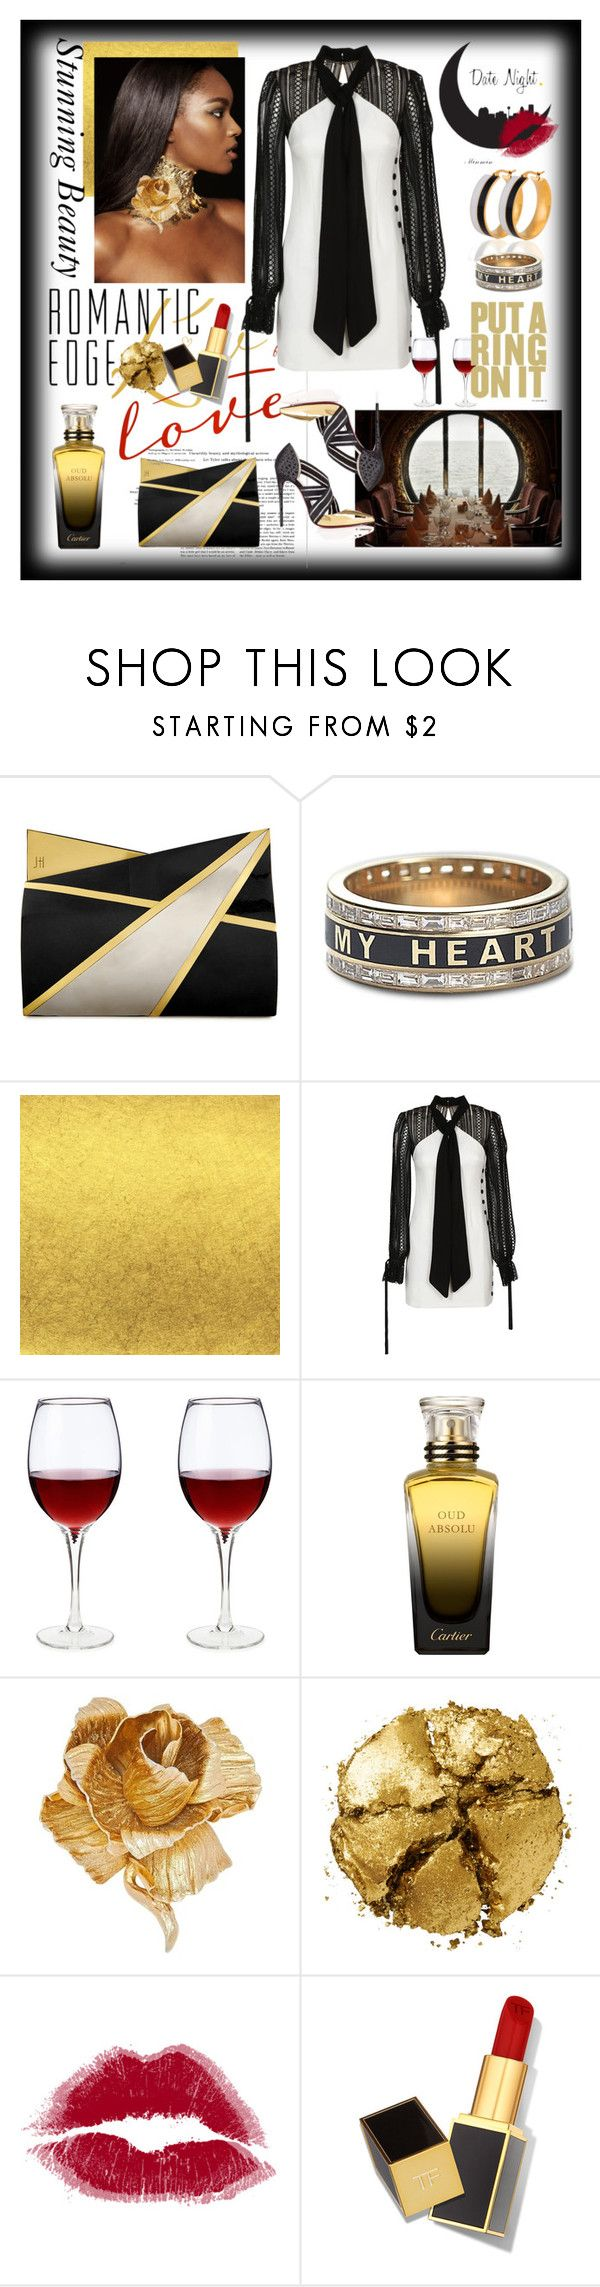 """Sidney Larae"" by onkei ❤ liked on Polyvore featuring Jill Haber, Foundrae, self-portrait, Cartier, Christian Dior, Pat McGrath and Tom Ford"